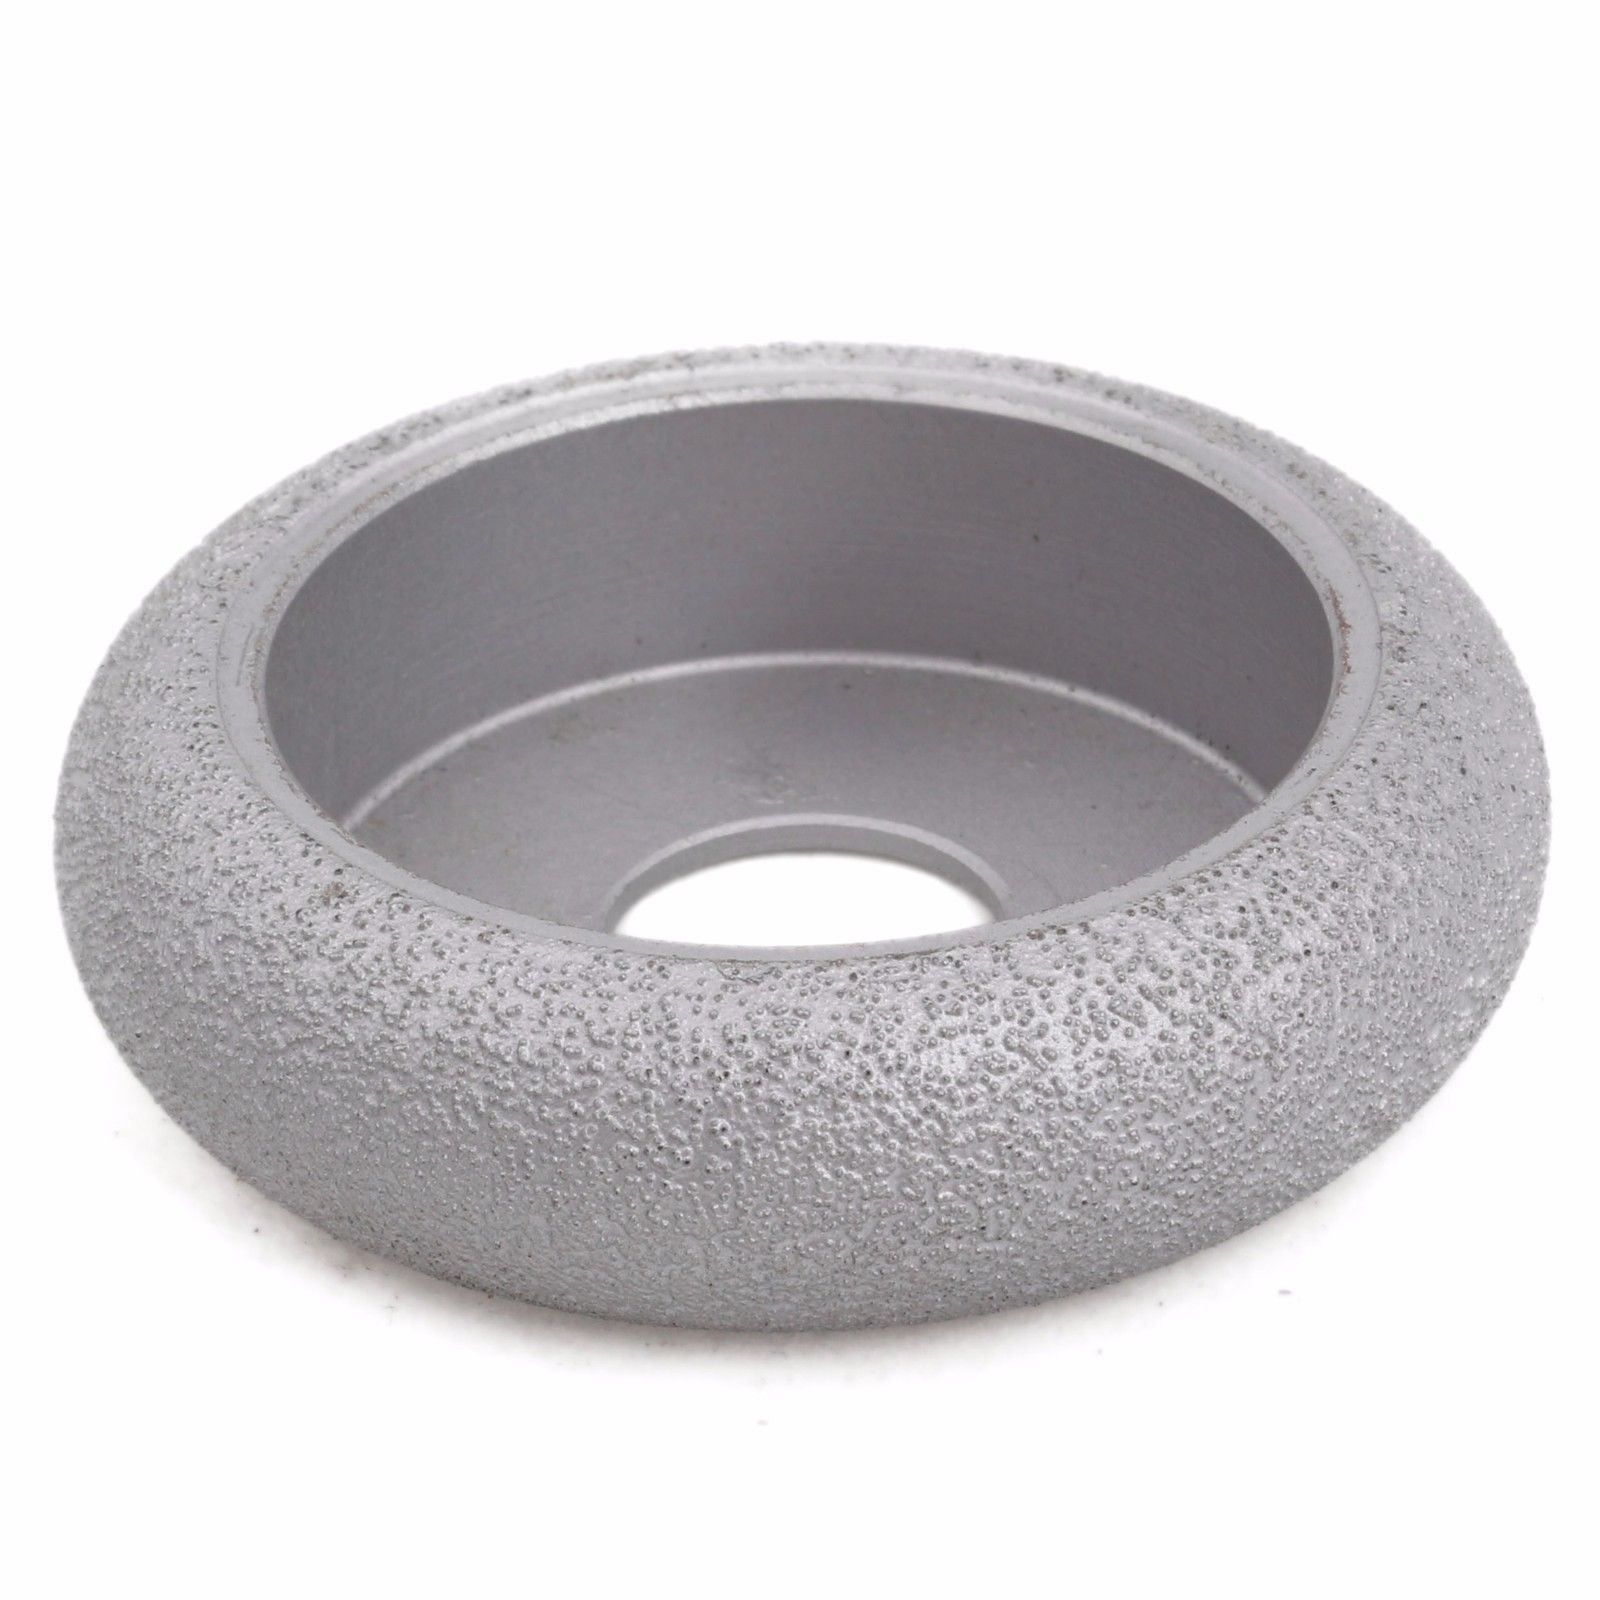 3 inch Grit 60 Width 25 mm Diamond Grinding Wheel Convex Curve BRAZED for Stone ILOVETOOL 4 inch 6 inch straight cup diamond grinding wheel for glass edger straight line double edging beveling machine m009